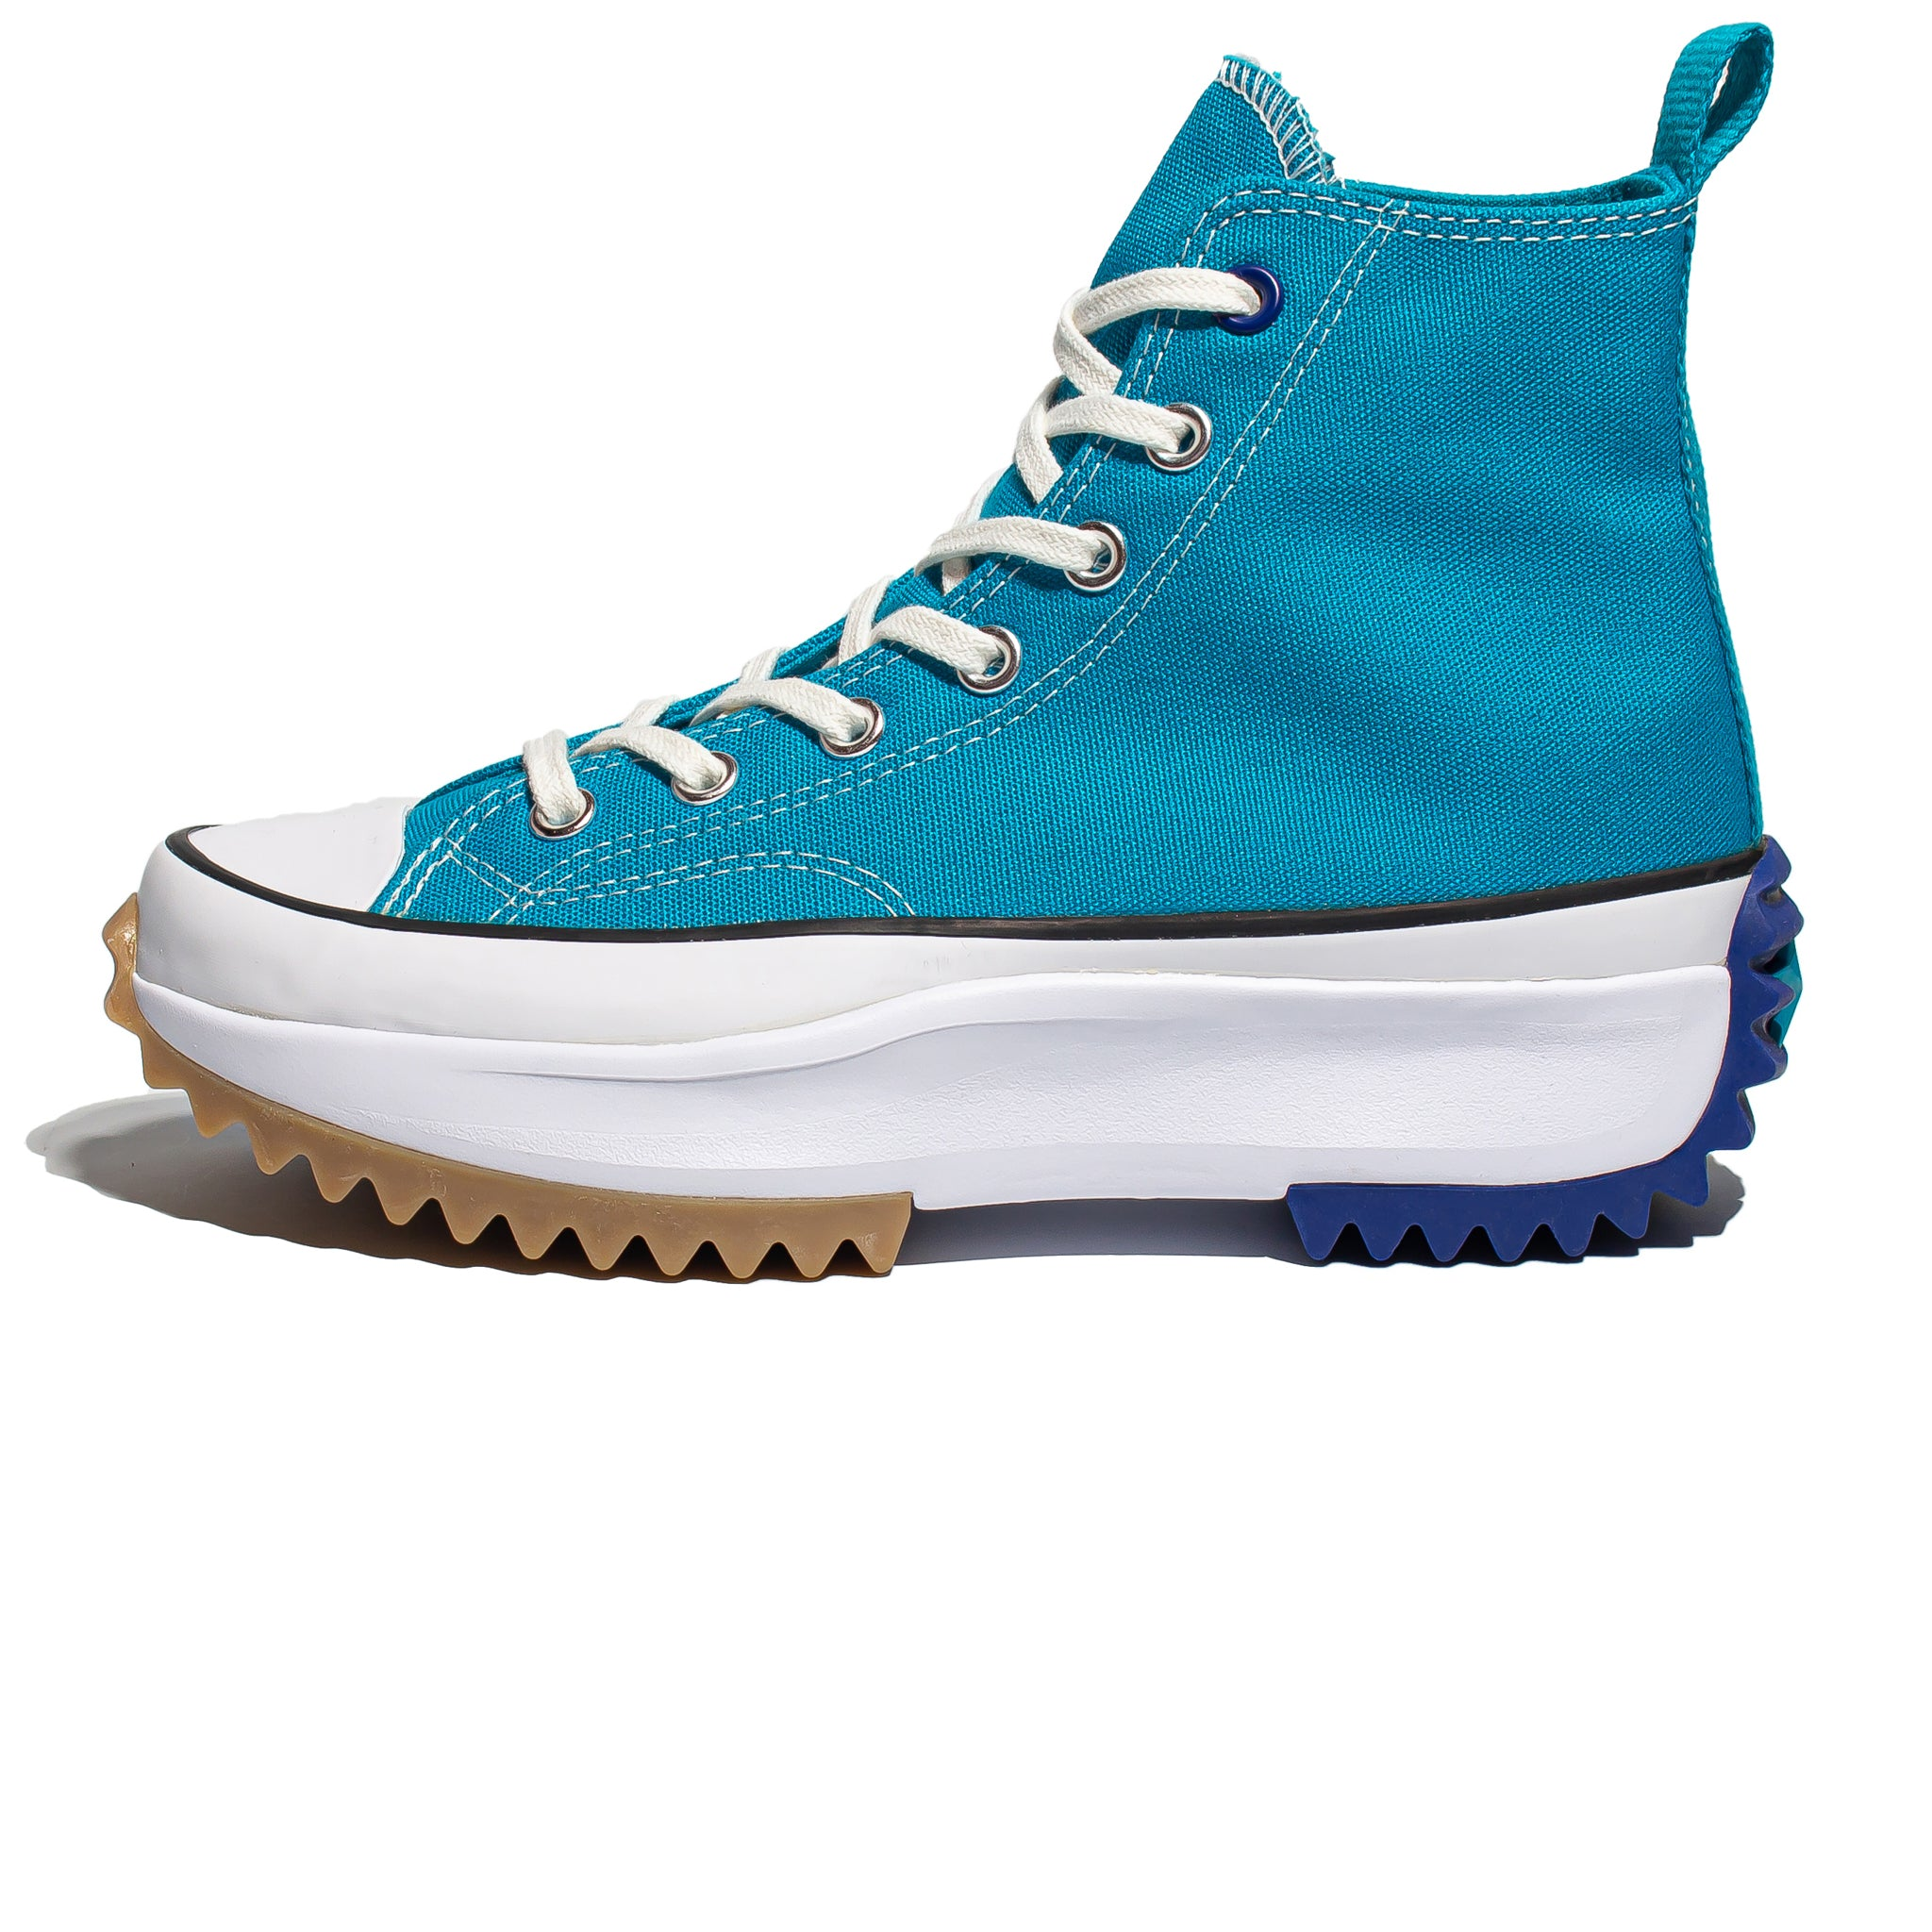 Converse Run Star Hike Rapid Teal